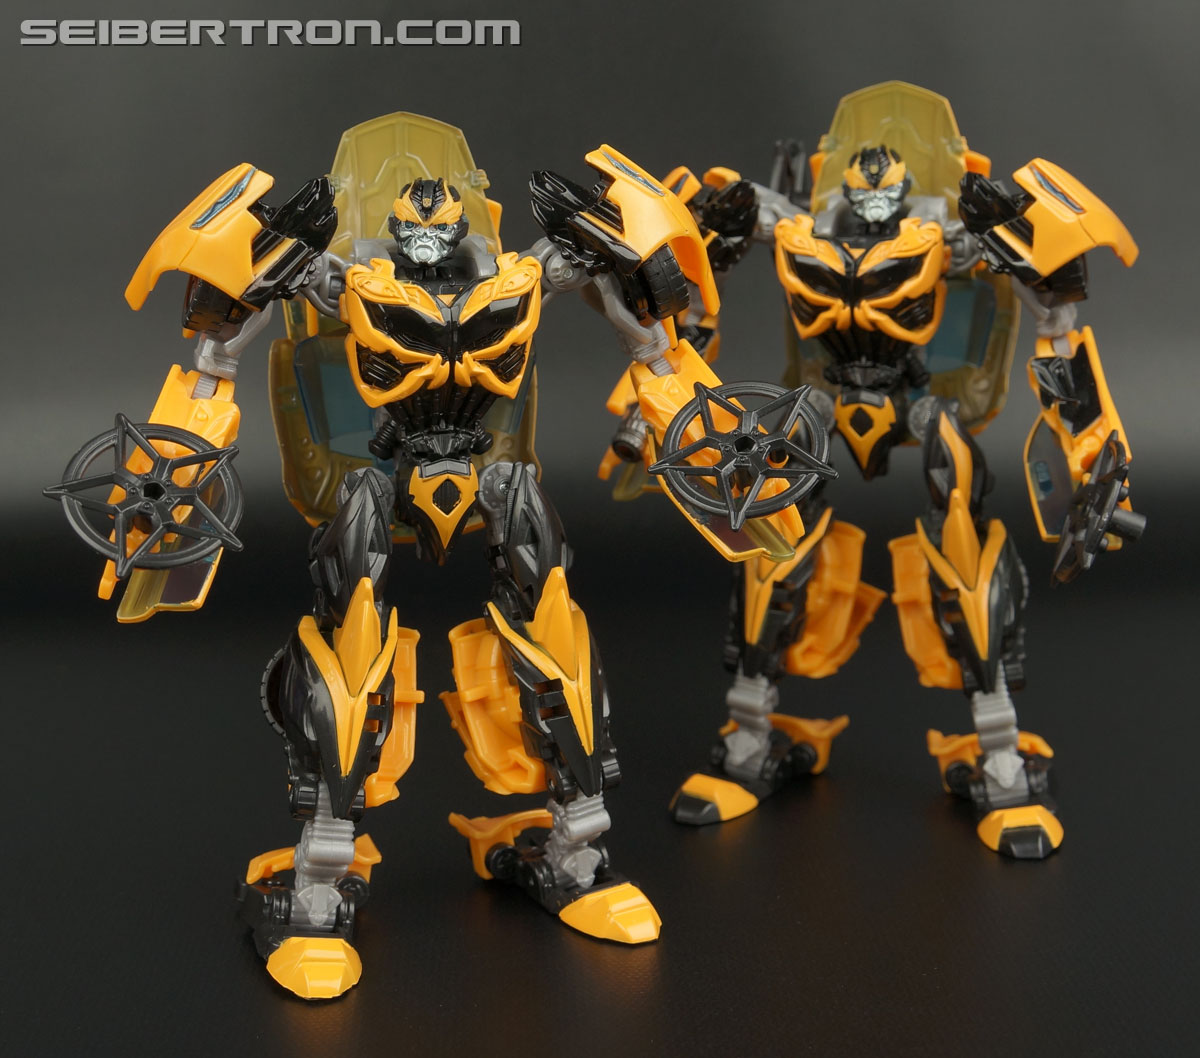 Transformers Age of Extinction: Generations Bumblebee (Image #159 of 190)